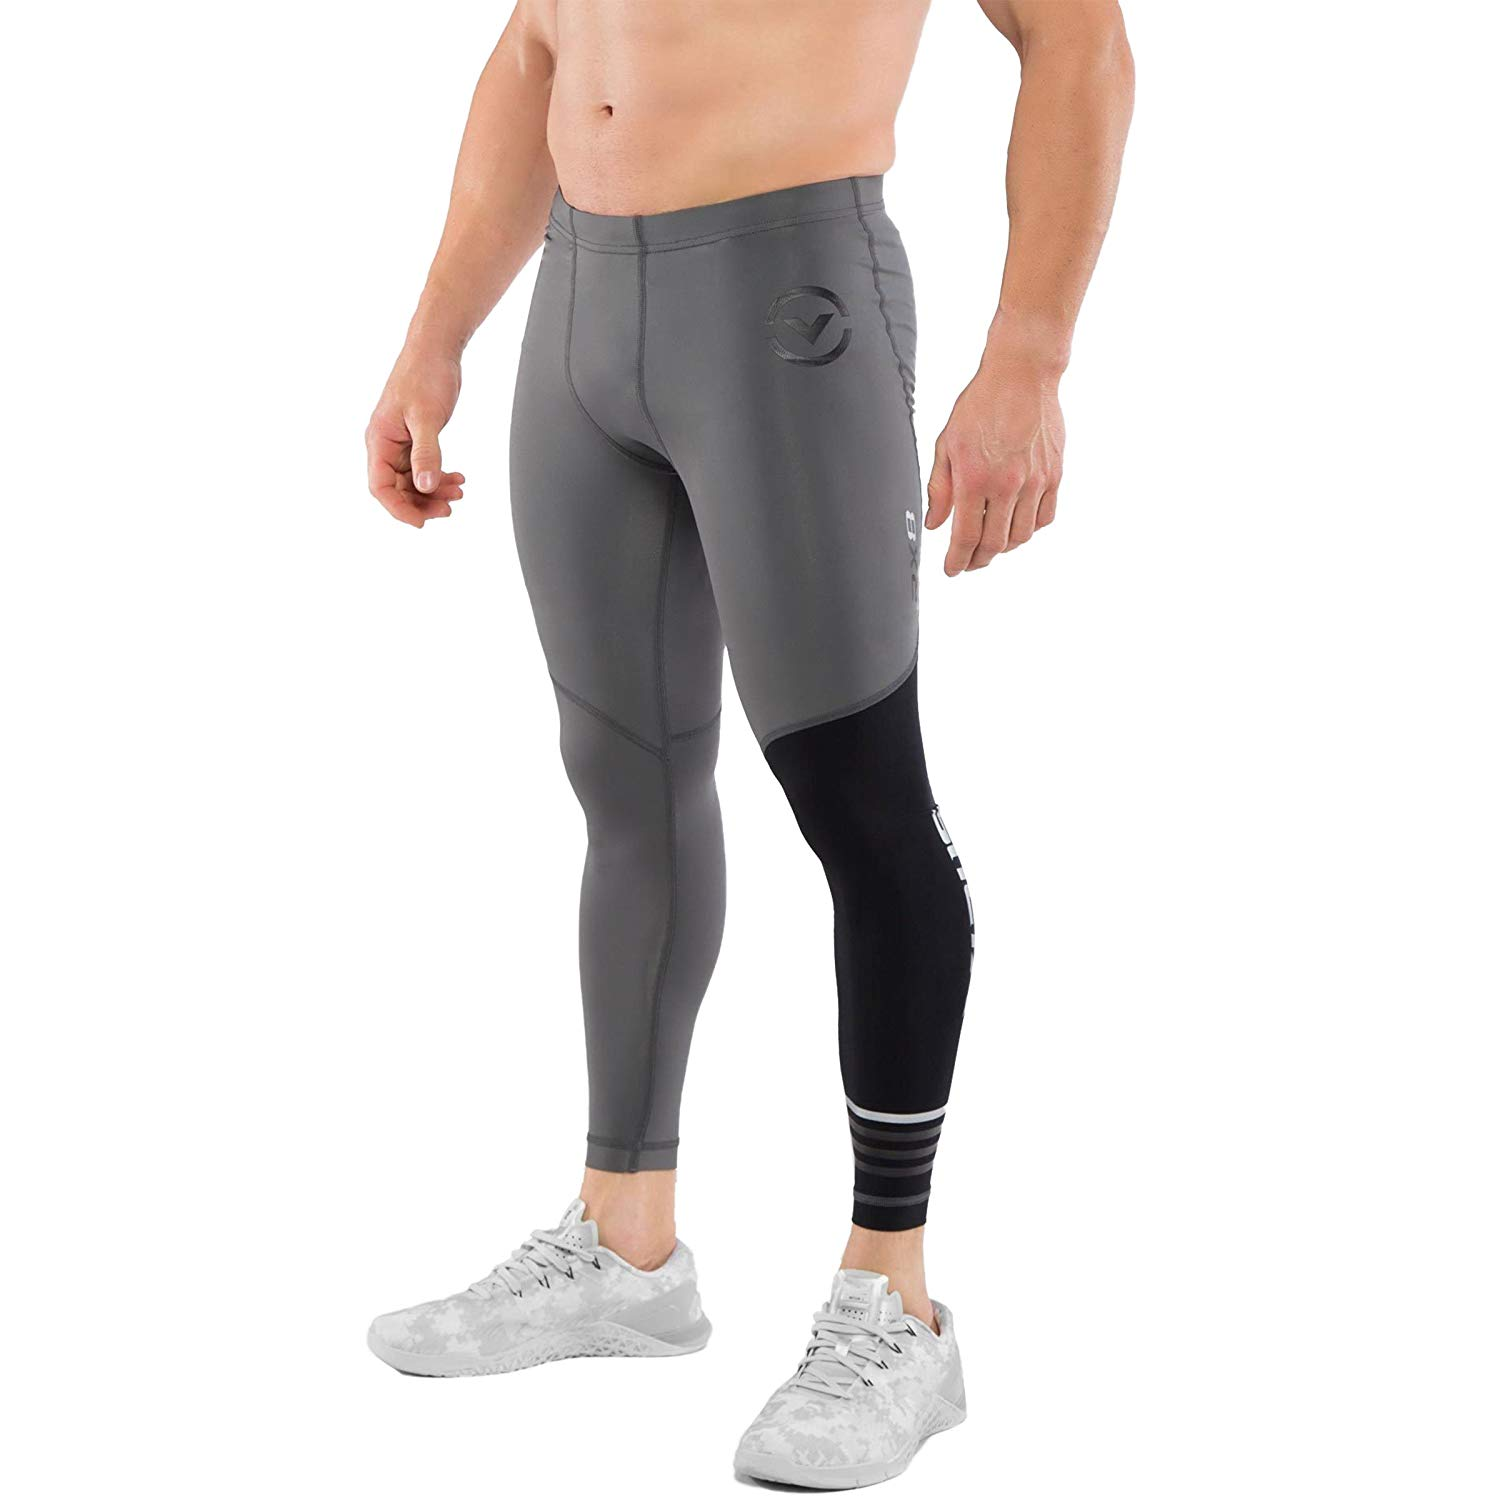 8f1825f92d Get Quotations · Virus Stay Cool Compression RX8 Tech Pant - Charcoal-Black  - X-Large